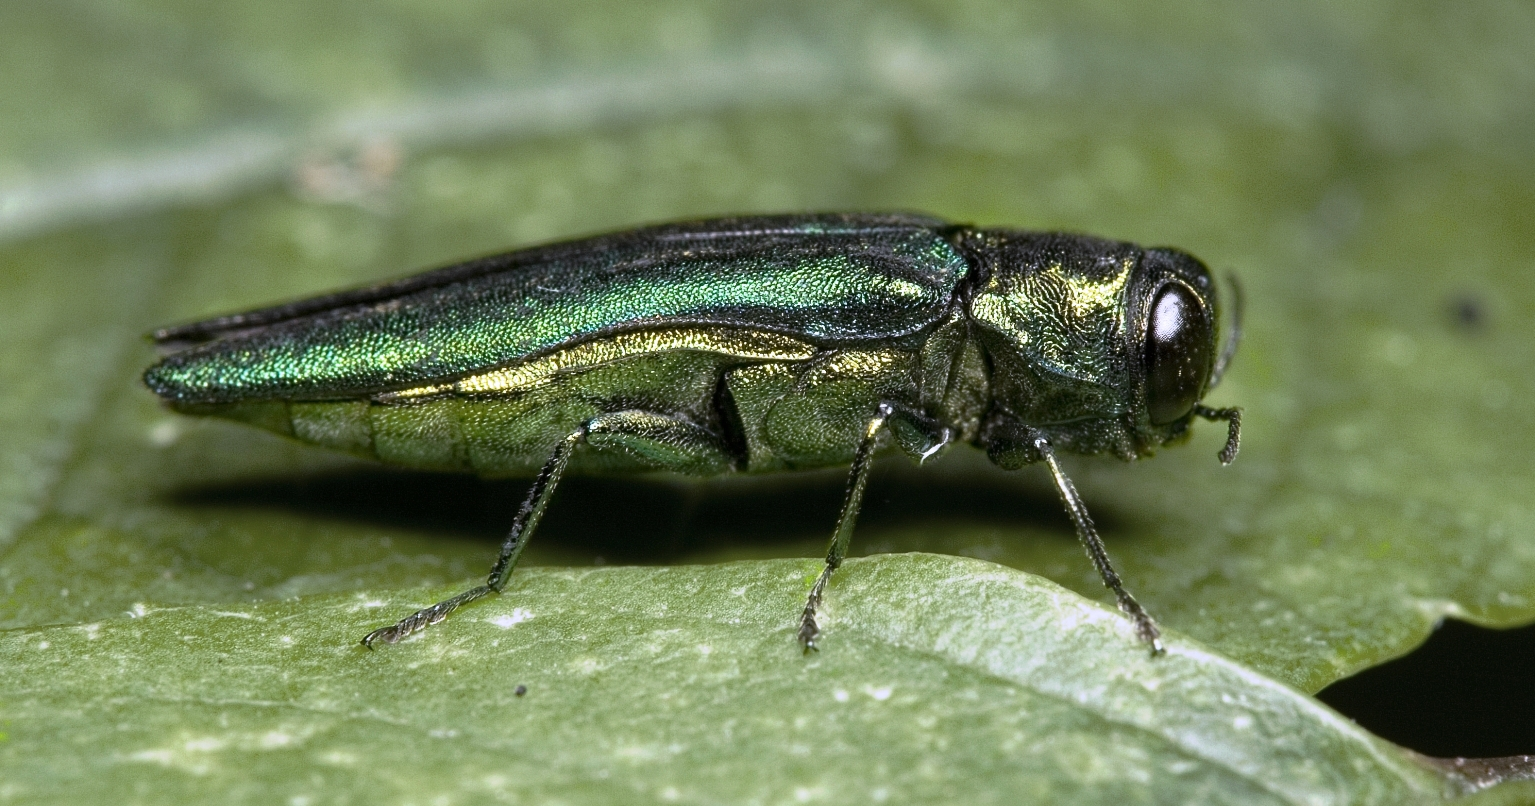 U.P. Focus: Panel discussion on U.P. emerald ash borer quarantine extension airs this weekend